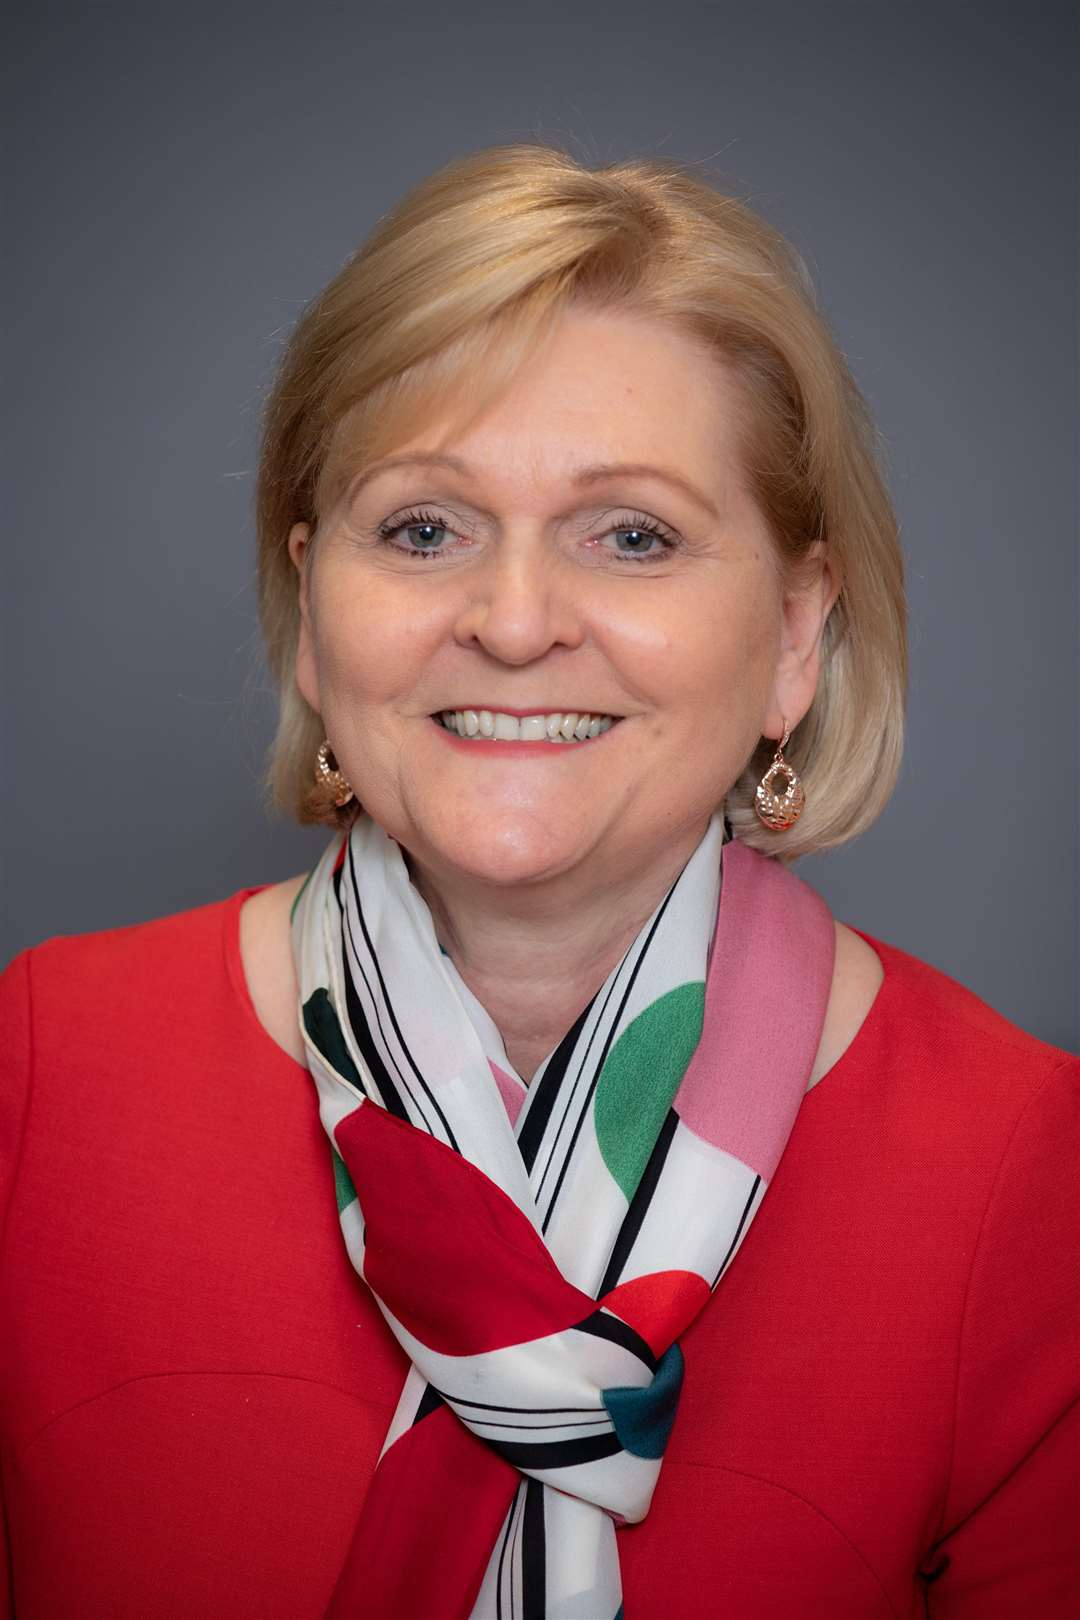 Dorothy Hosein has stepped down from leading East of England Ambulance Trust